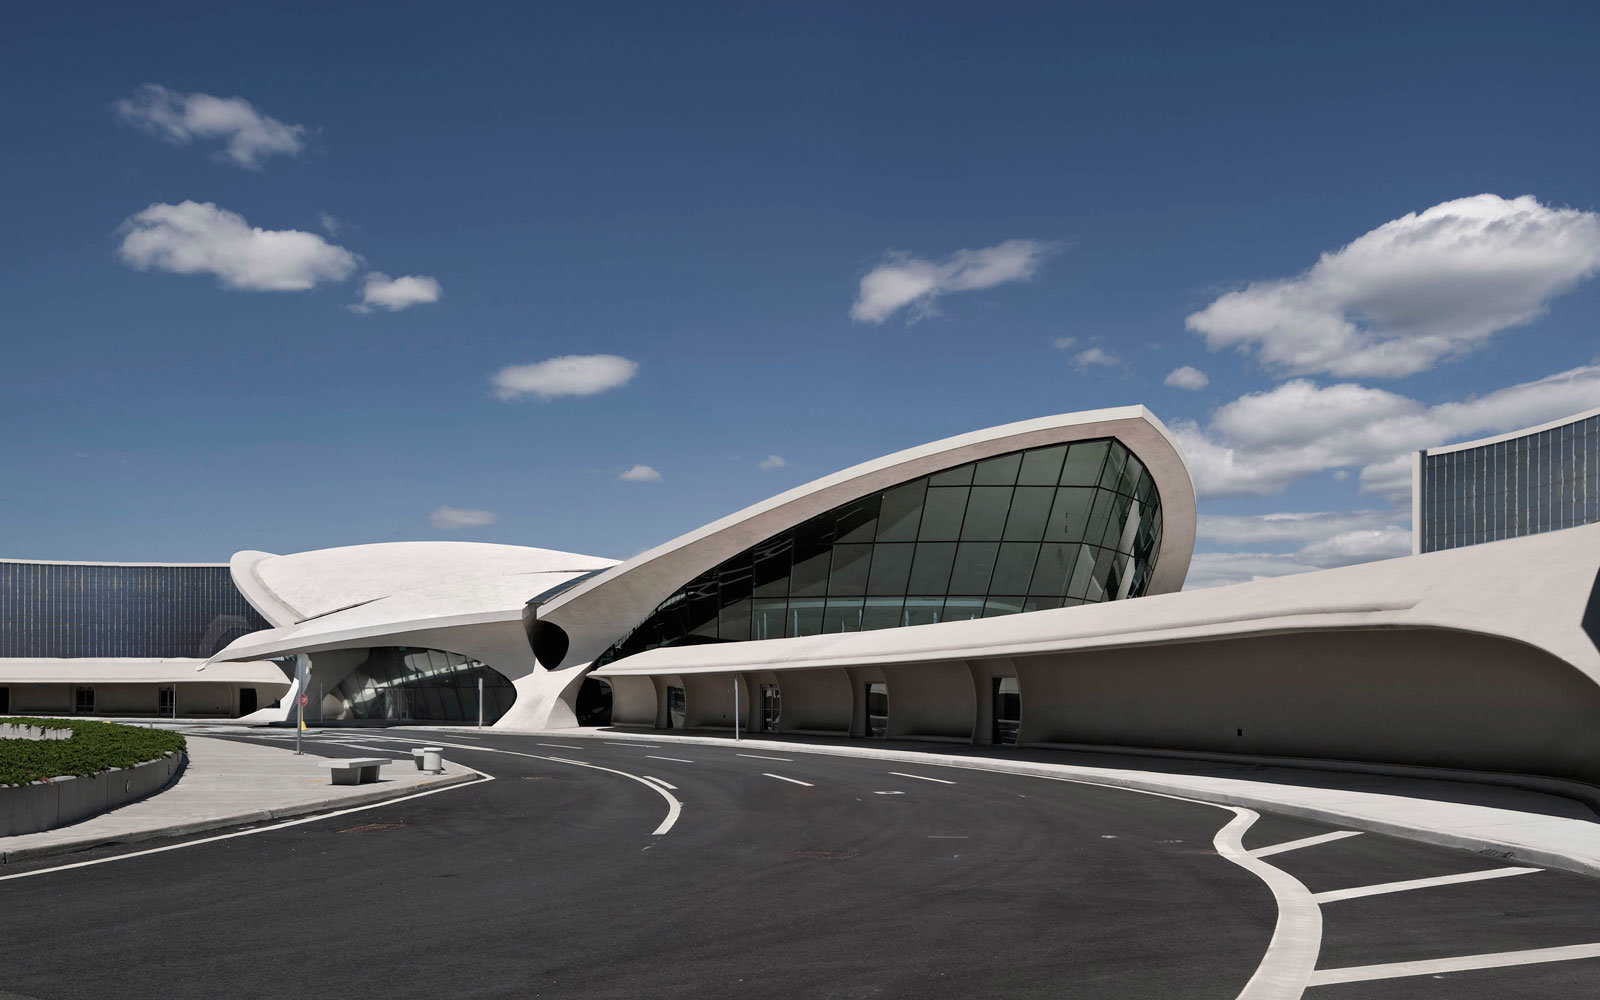 Twa hotel inside old jfk terminal breaks ground travel for Jfk airport hotel inside terminal